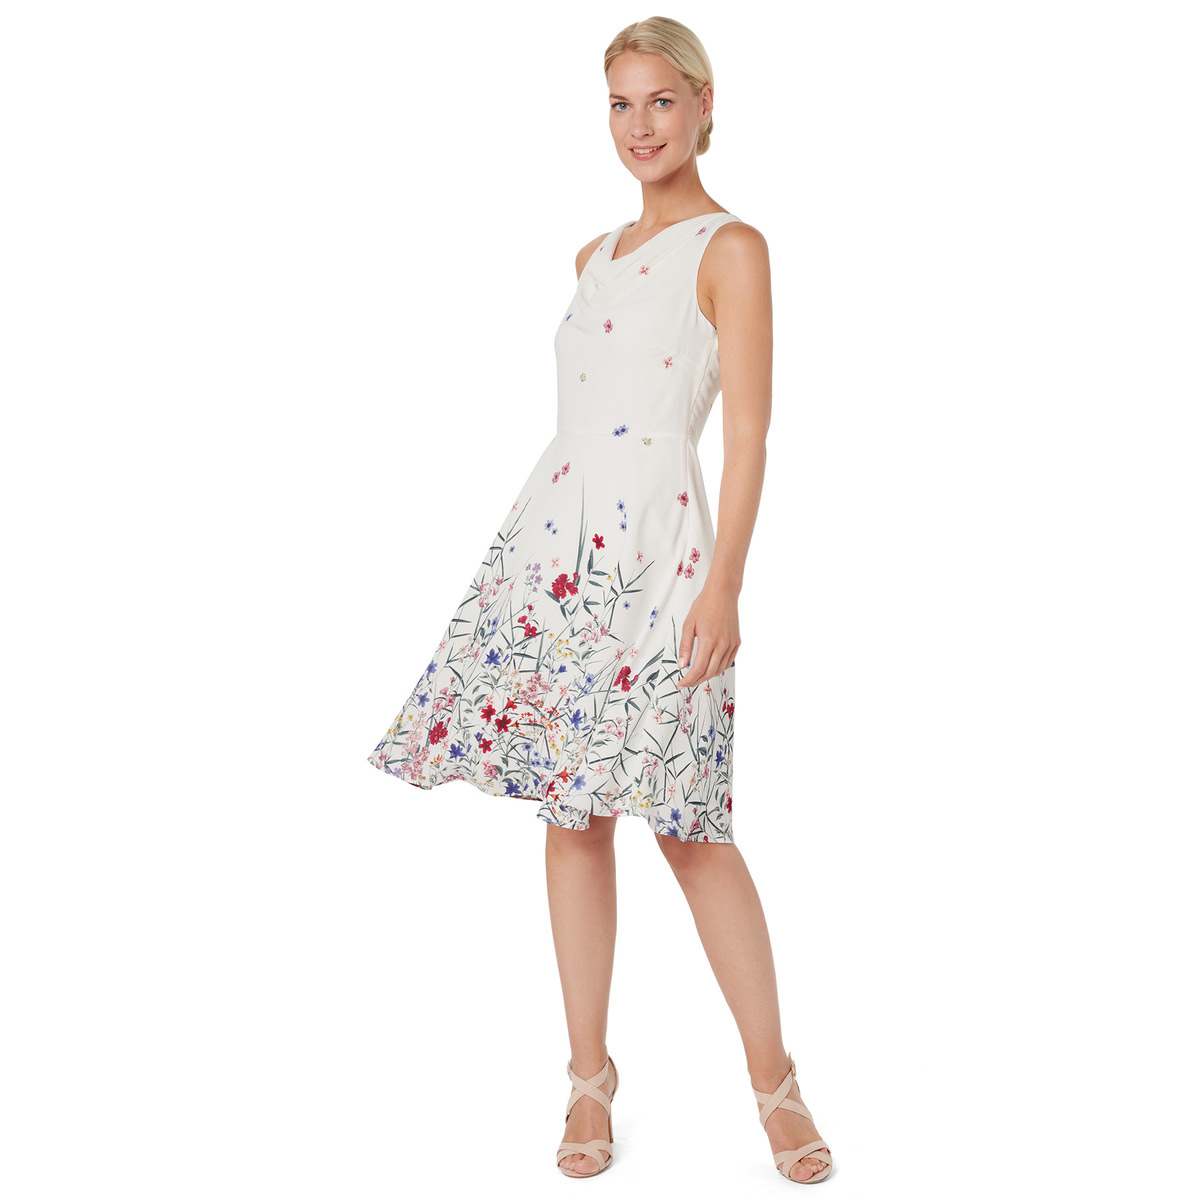 Kleid mit romantischem Borderprint in offwhite